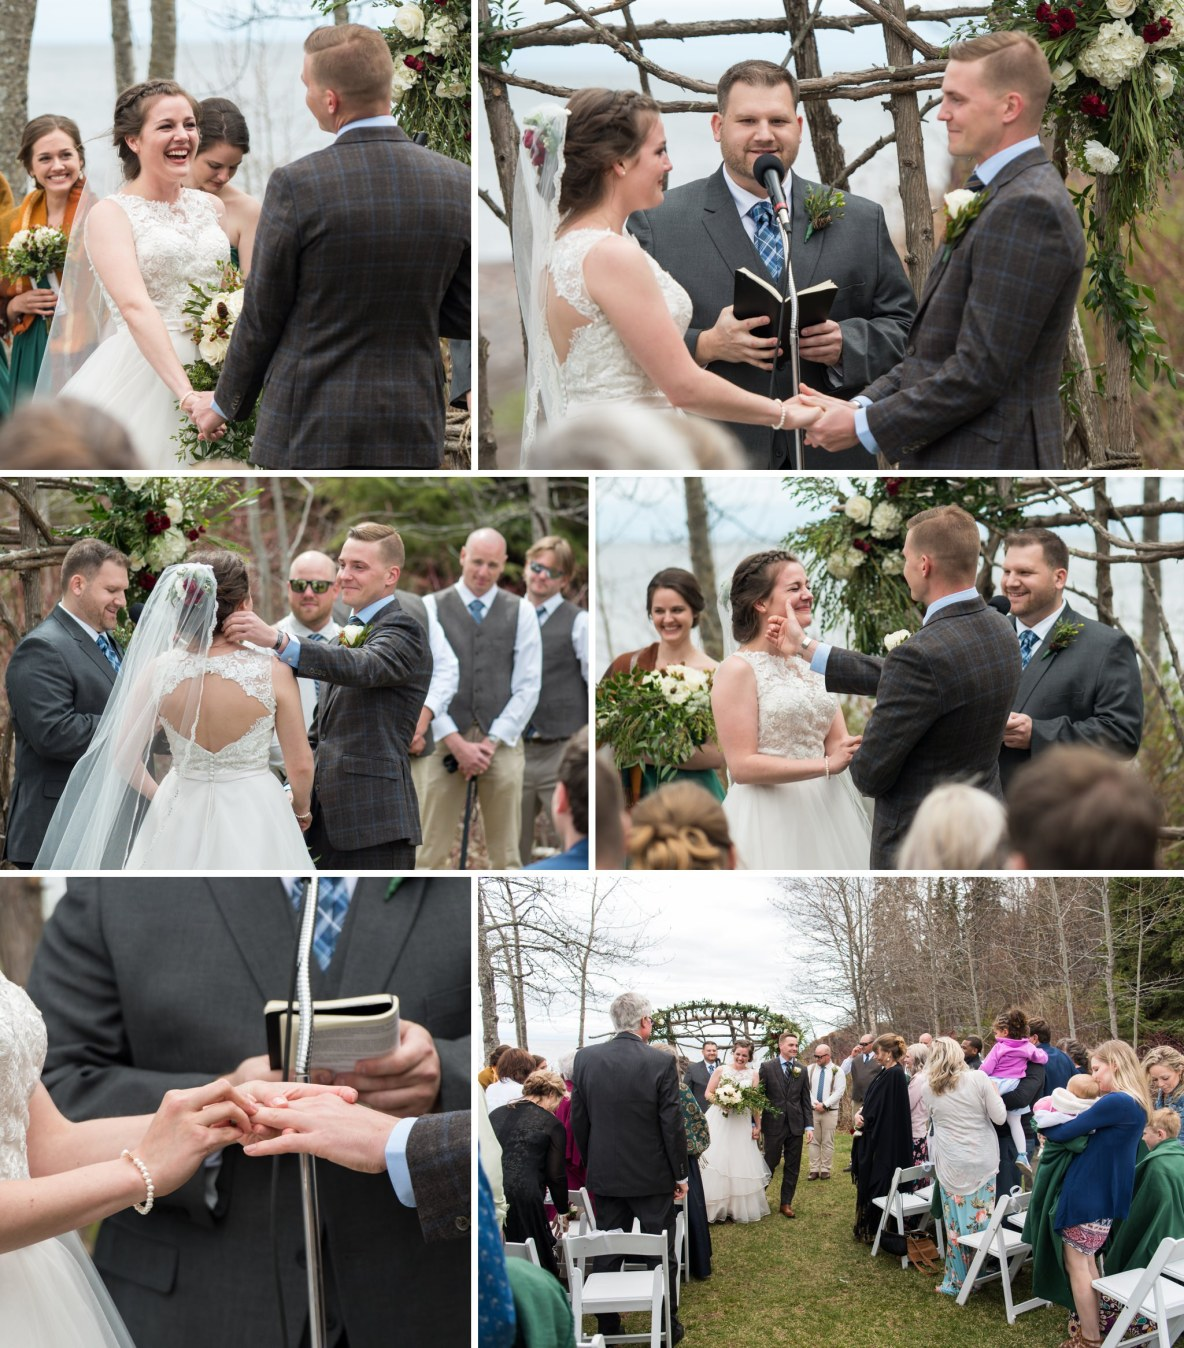 Photos of the wedding ceremony